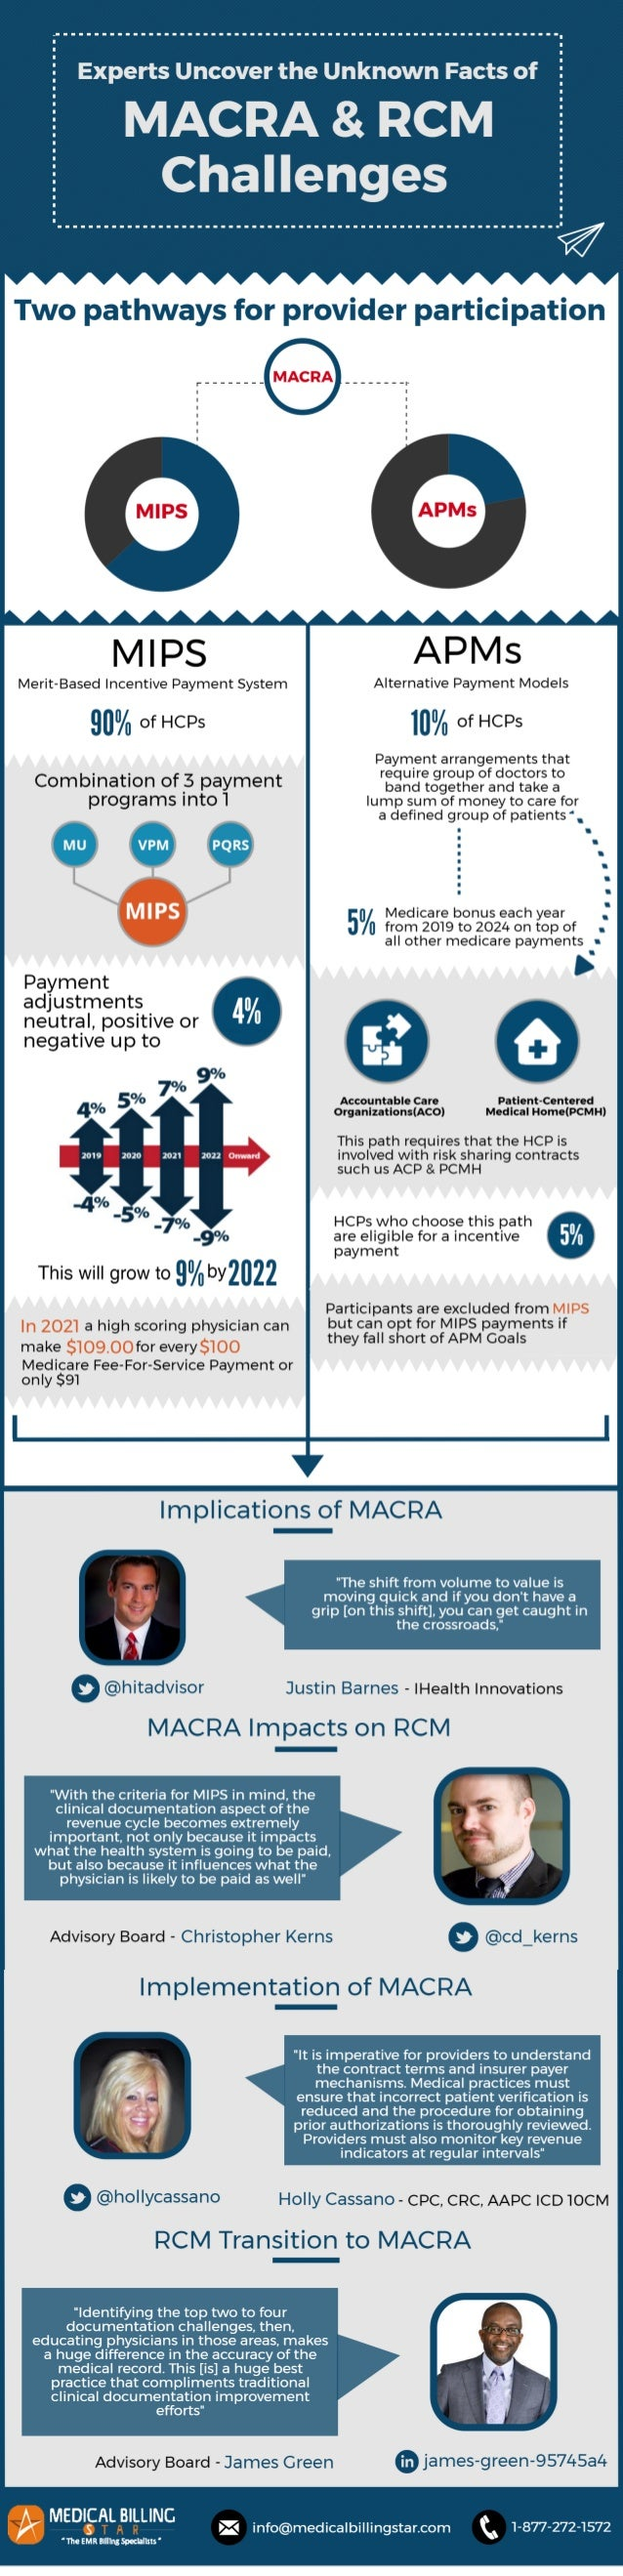 Facts of MACRA and RCM Challenges